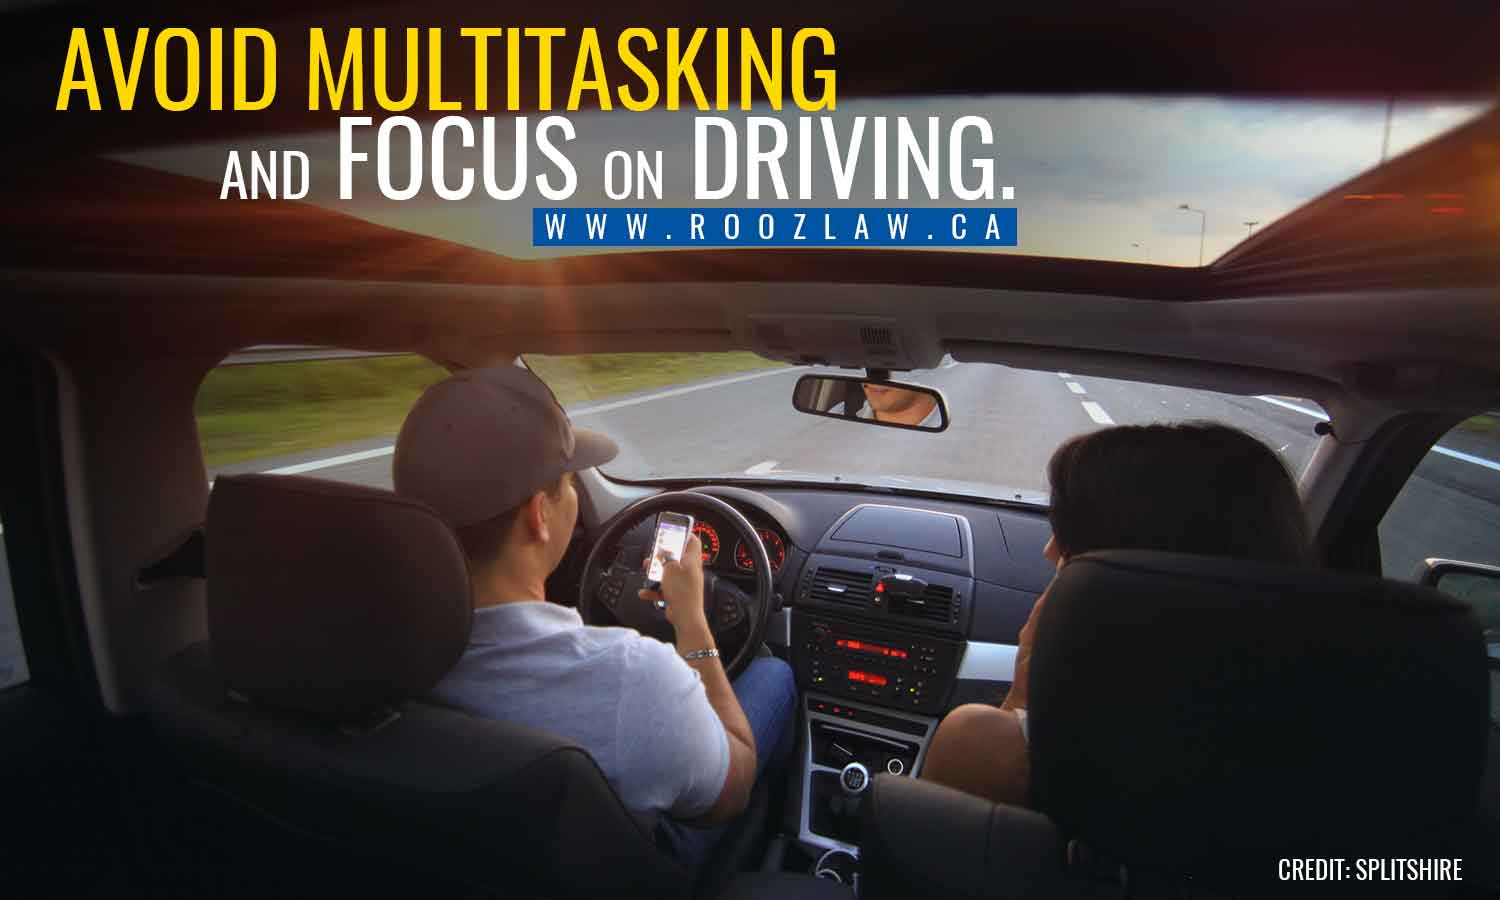 Avoid-multitasking-and-focus-on-driving